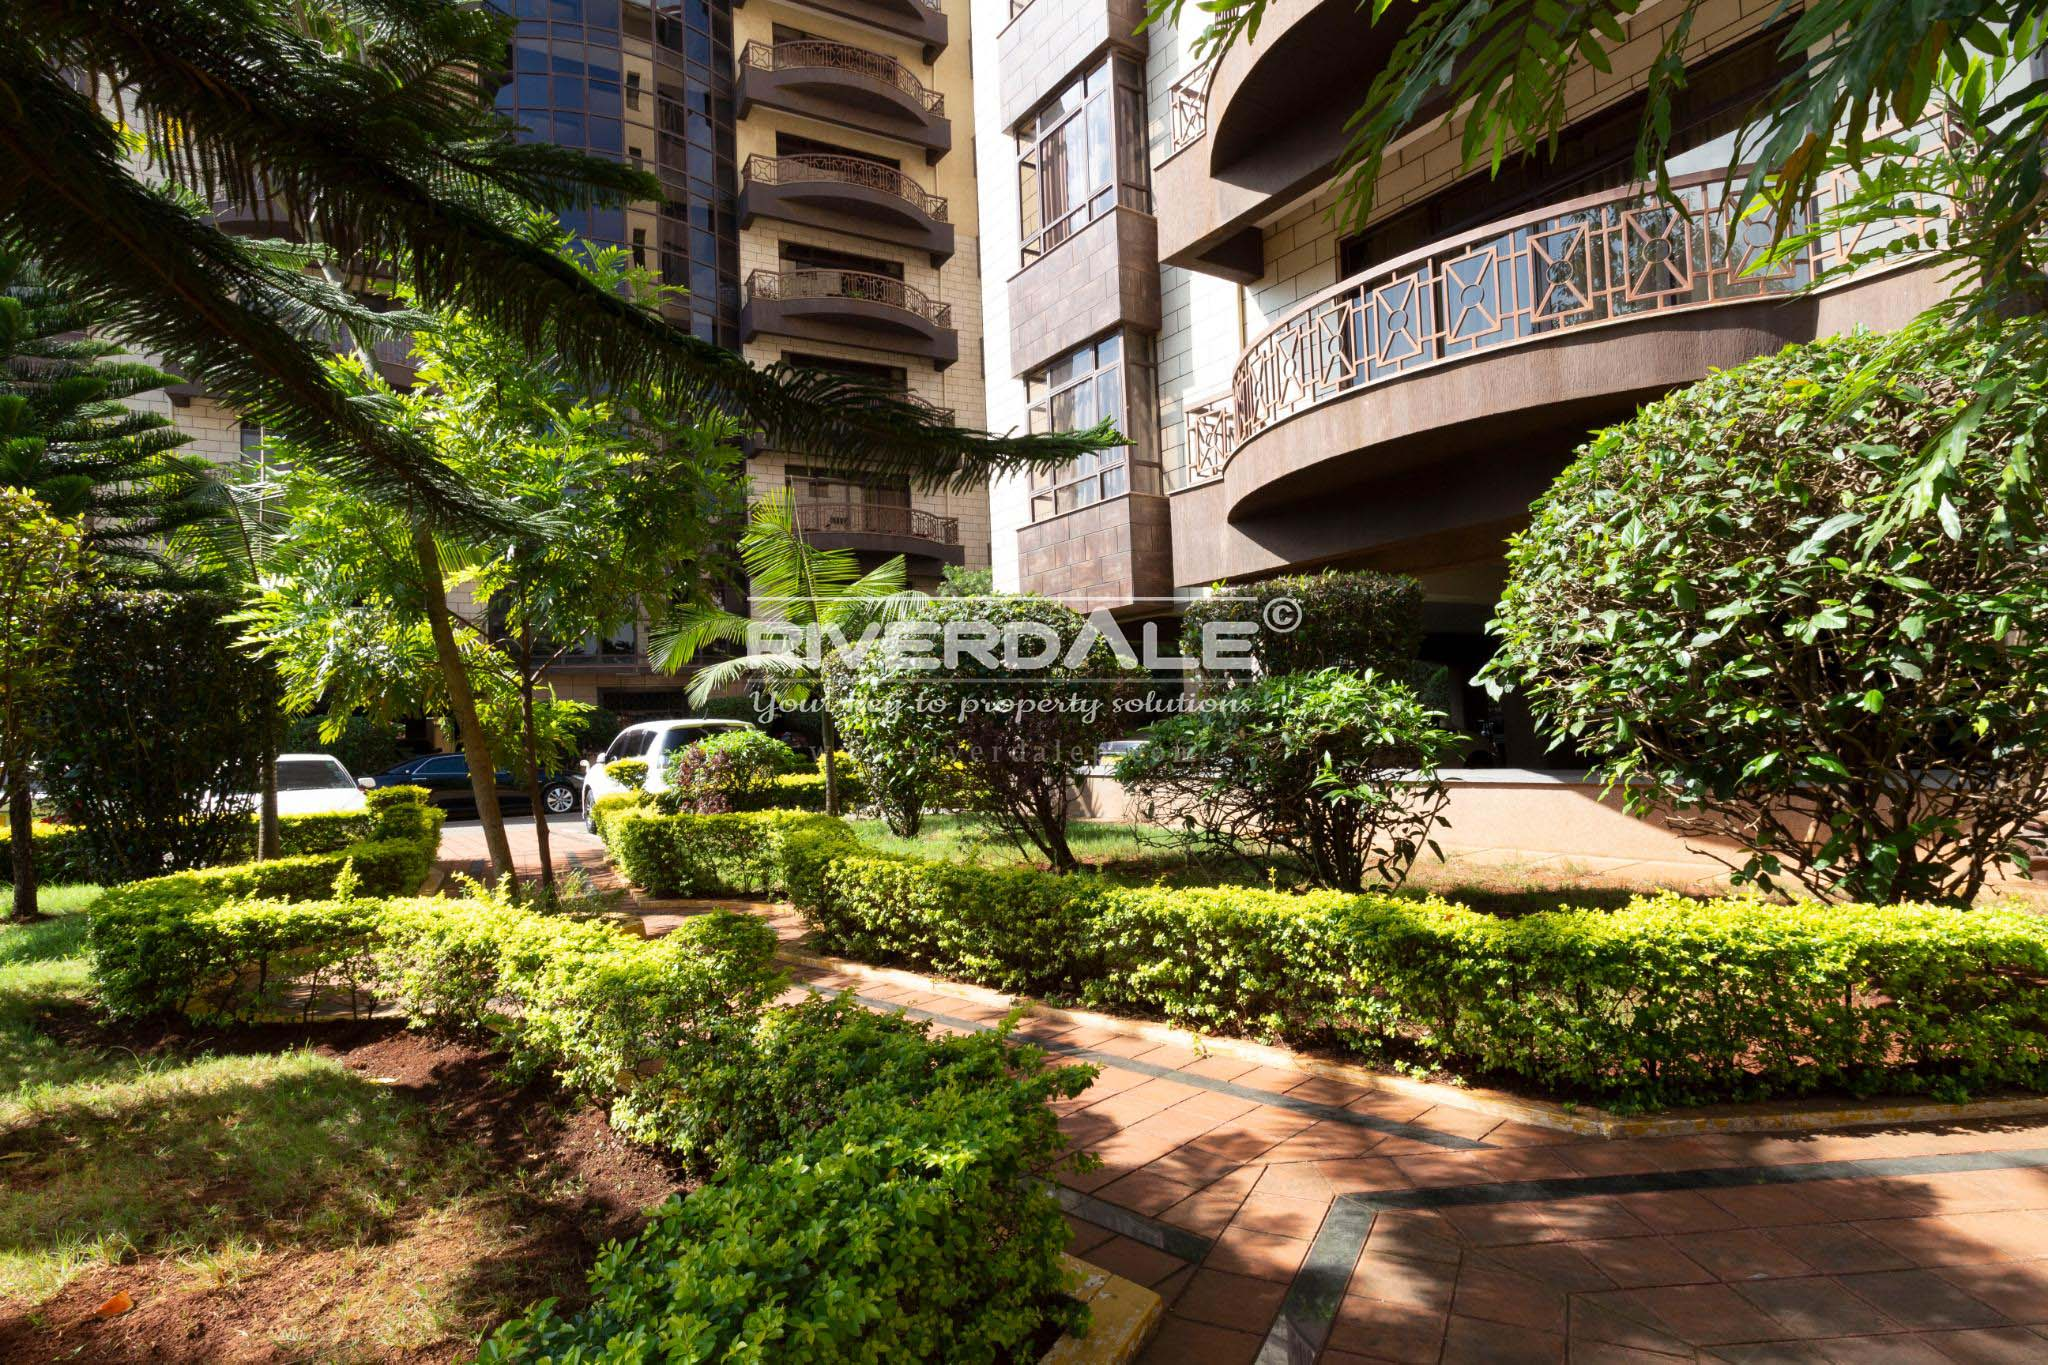 Marvellous 3 Bedroom Apartment To Let In Kilimani